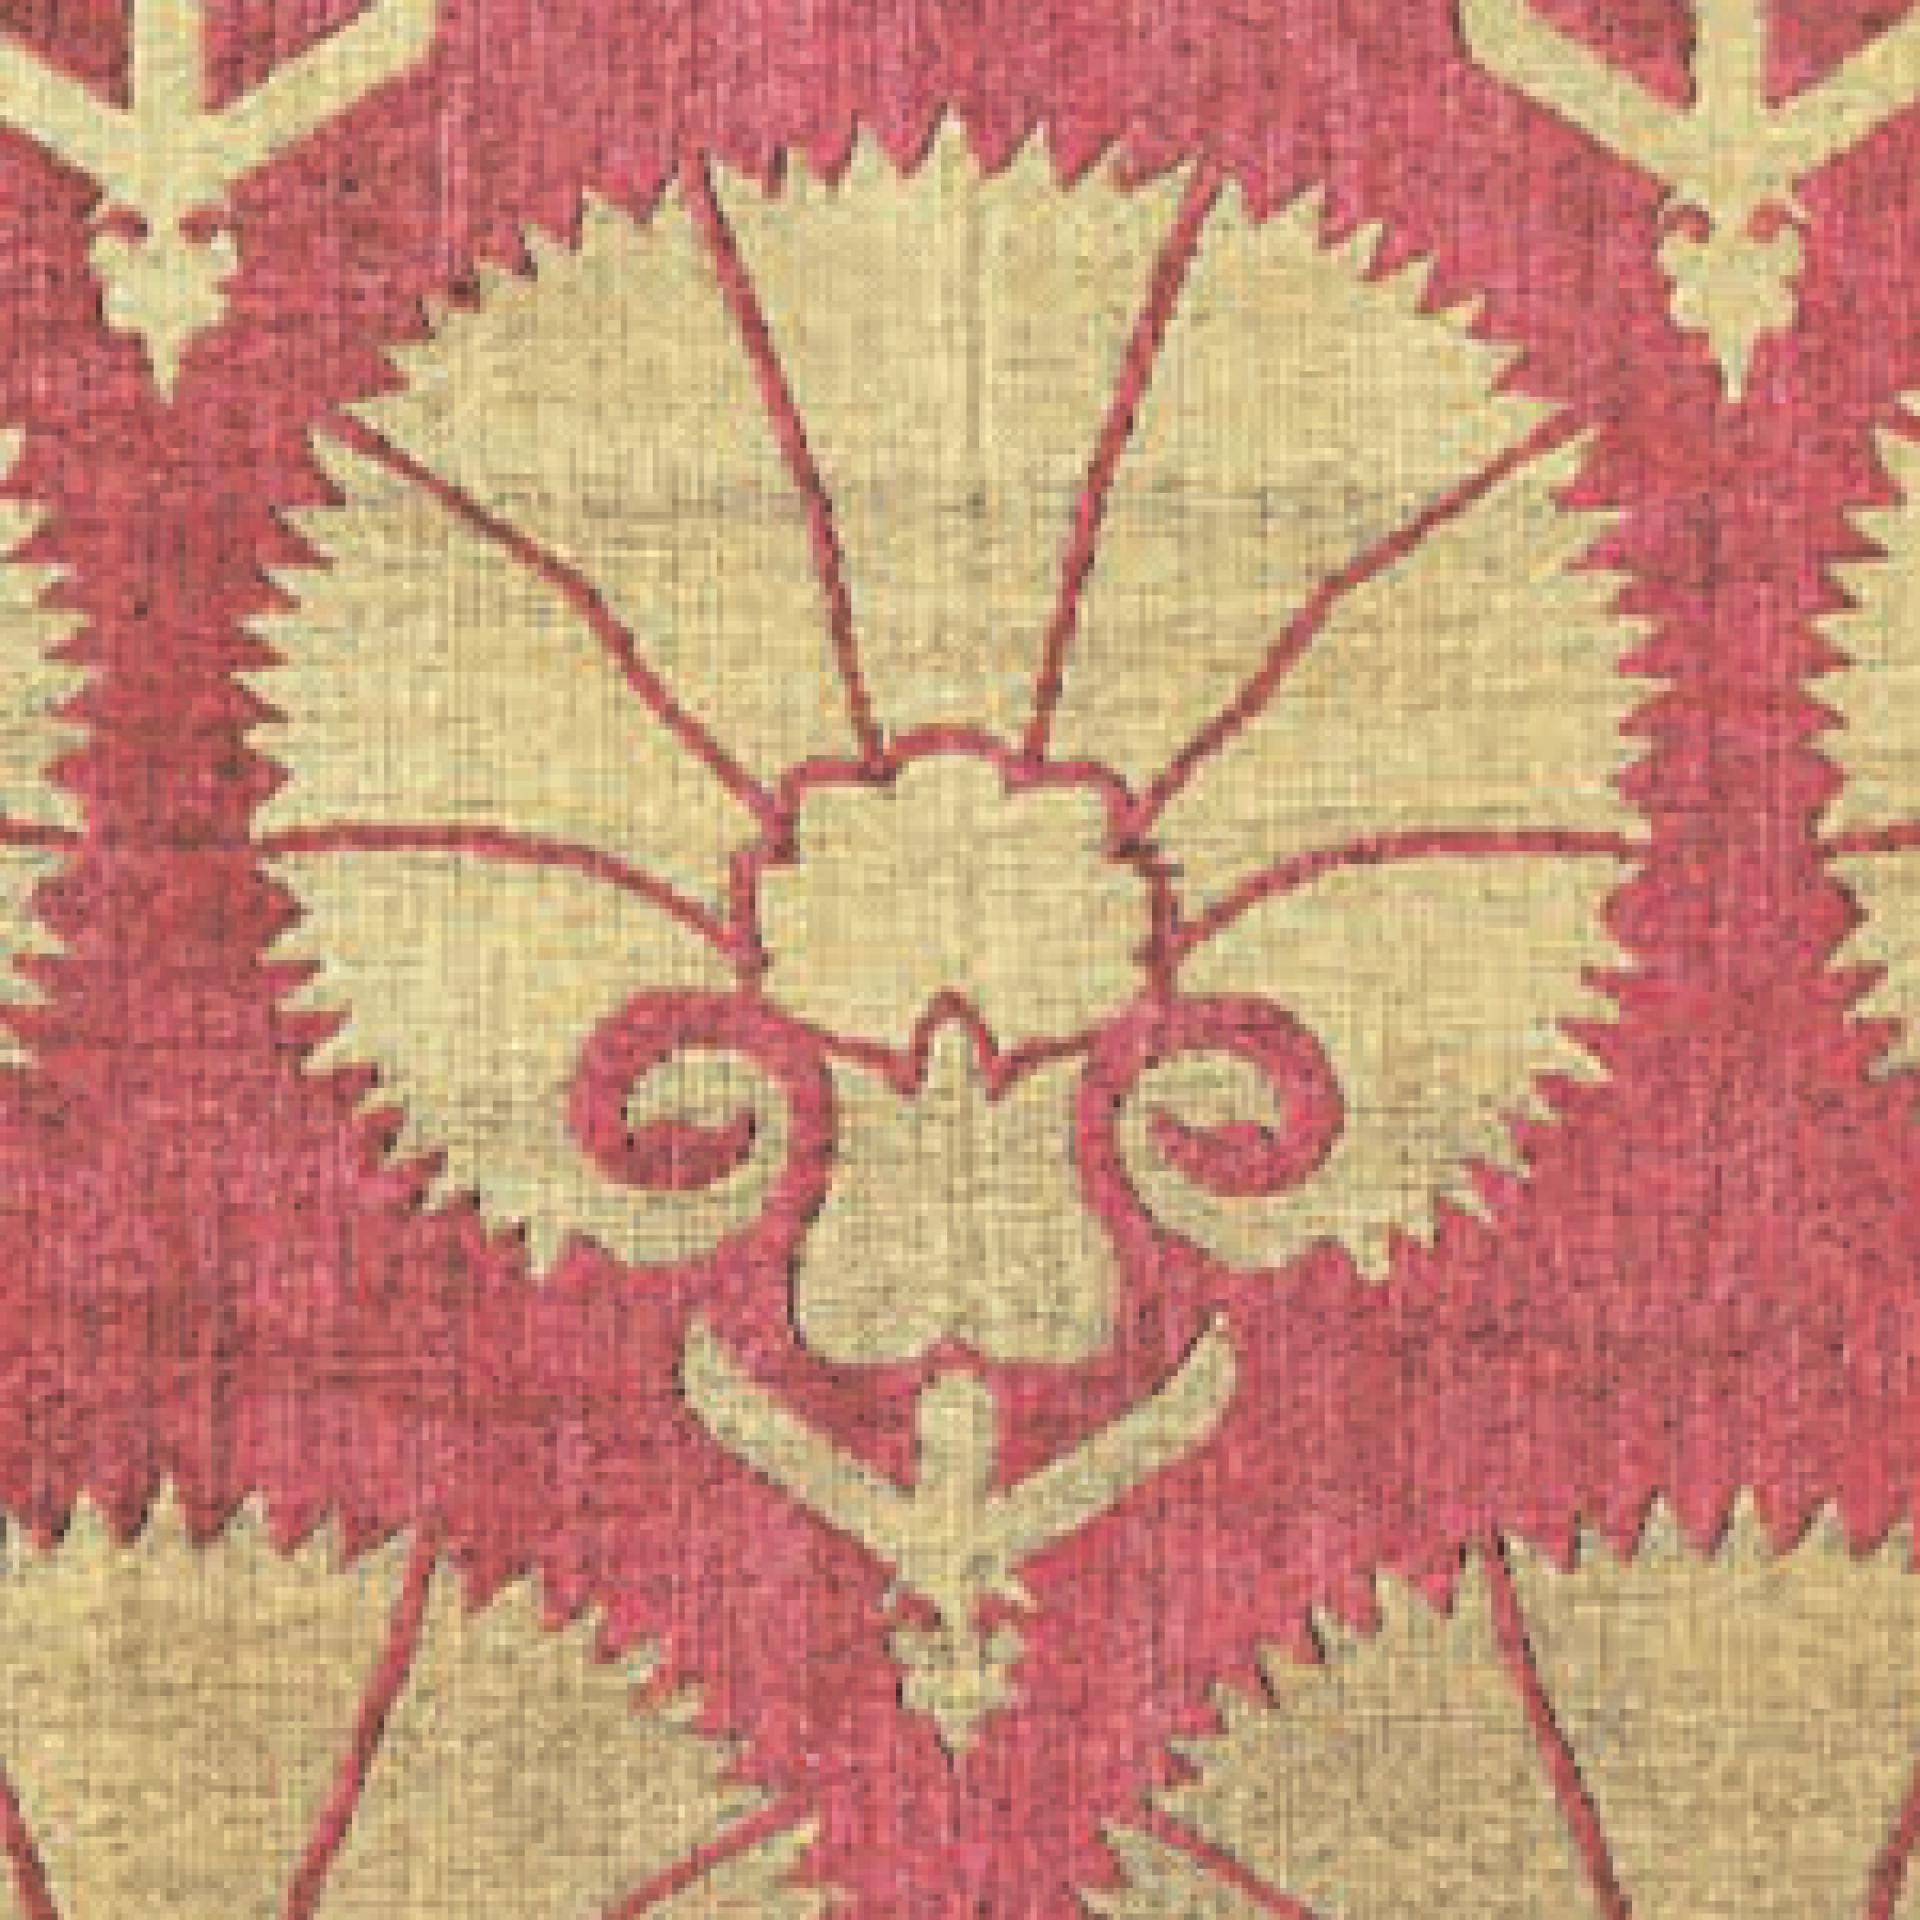 TEXTILE - COLLECTION - Sadberk Hanım Museum